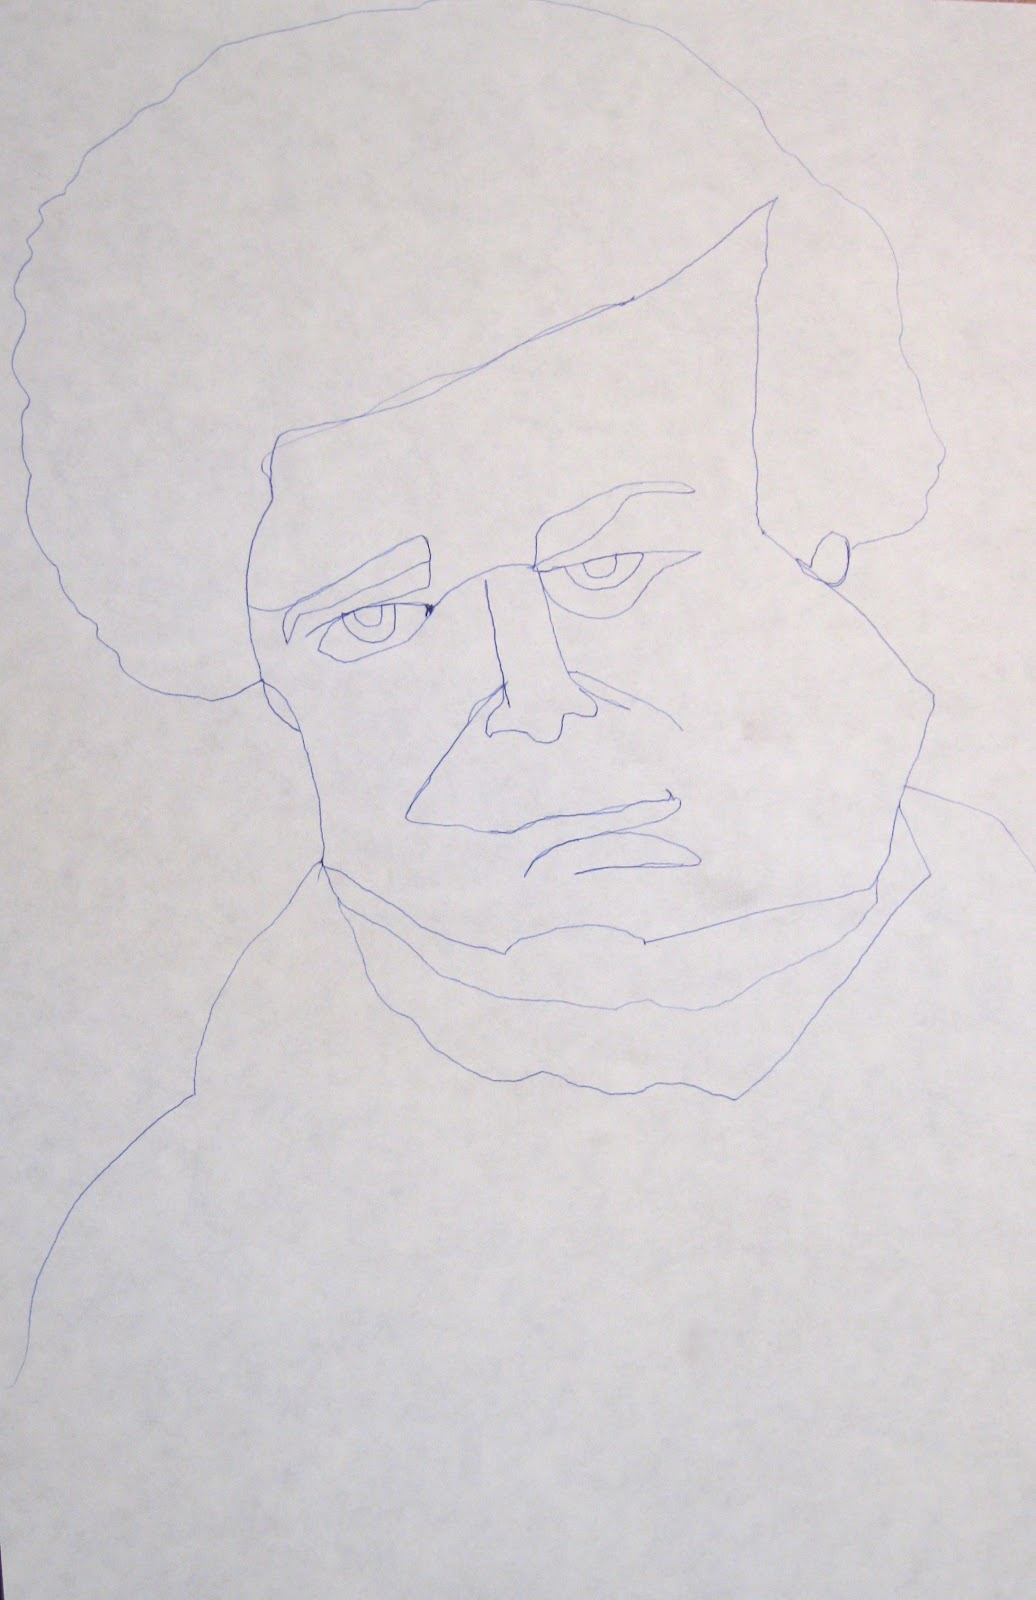 Blind Contour Line Drawing Lesson Plan : Project art a day lesson i can t resist it contour line